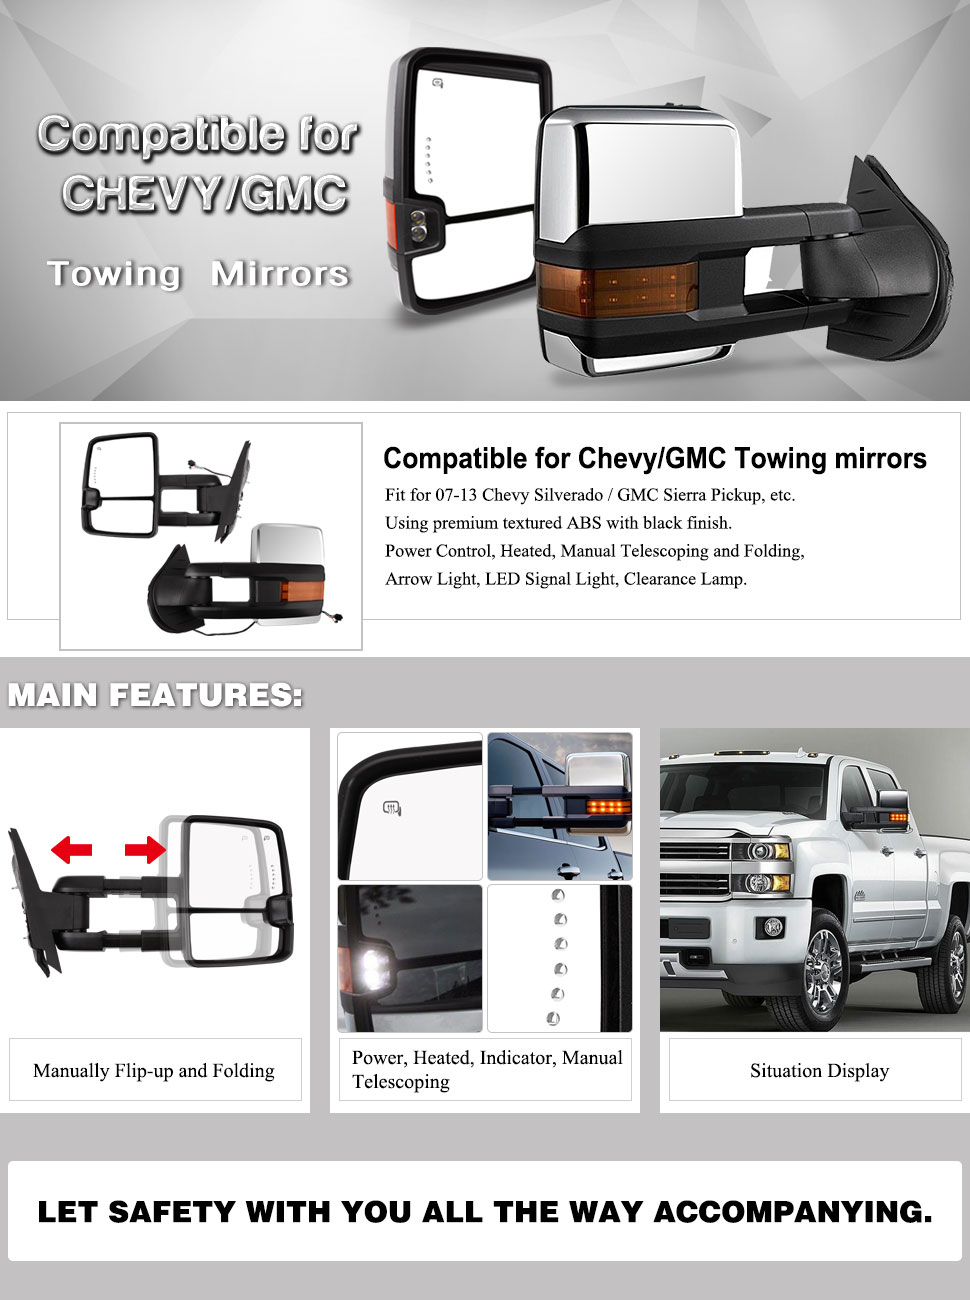 Yitamotor Towing Mirrors For Chevy Gmc Power Heated Led Truck Wiring Diagram Silverado Sierra Chrome Signal Arrow Clearance Lamps